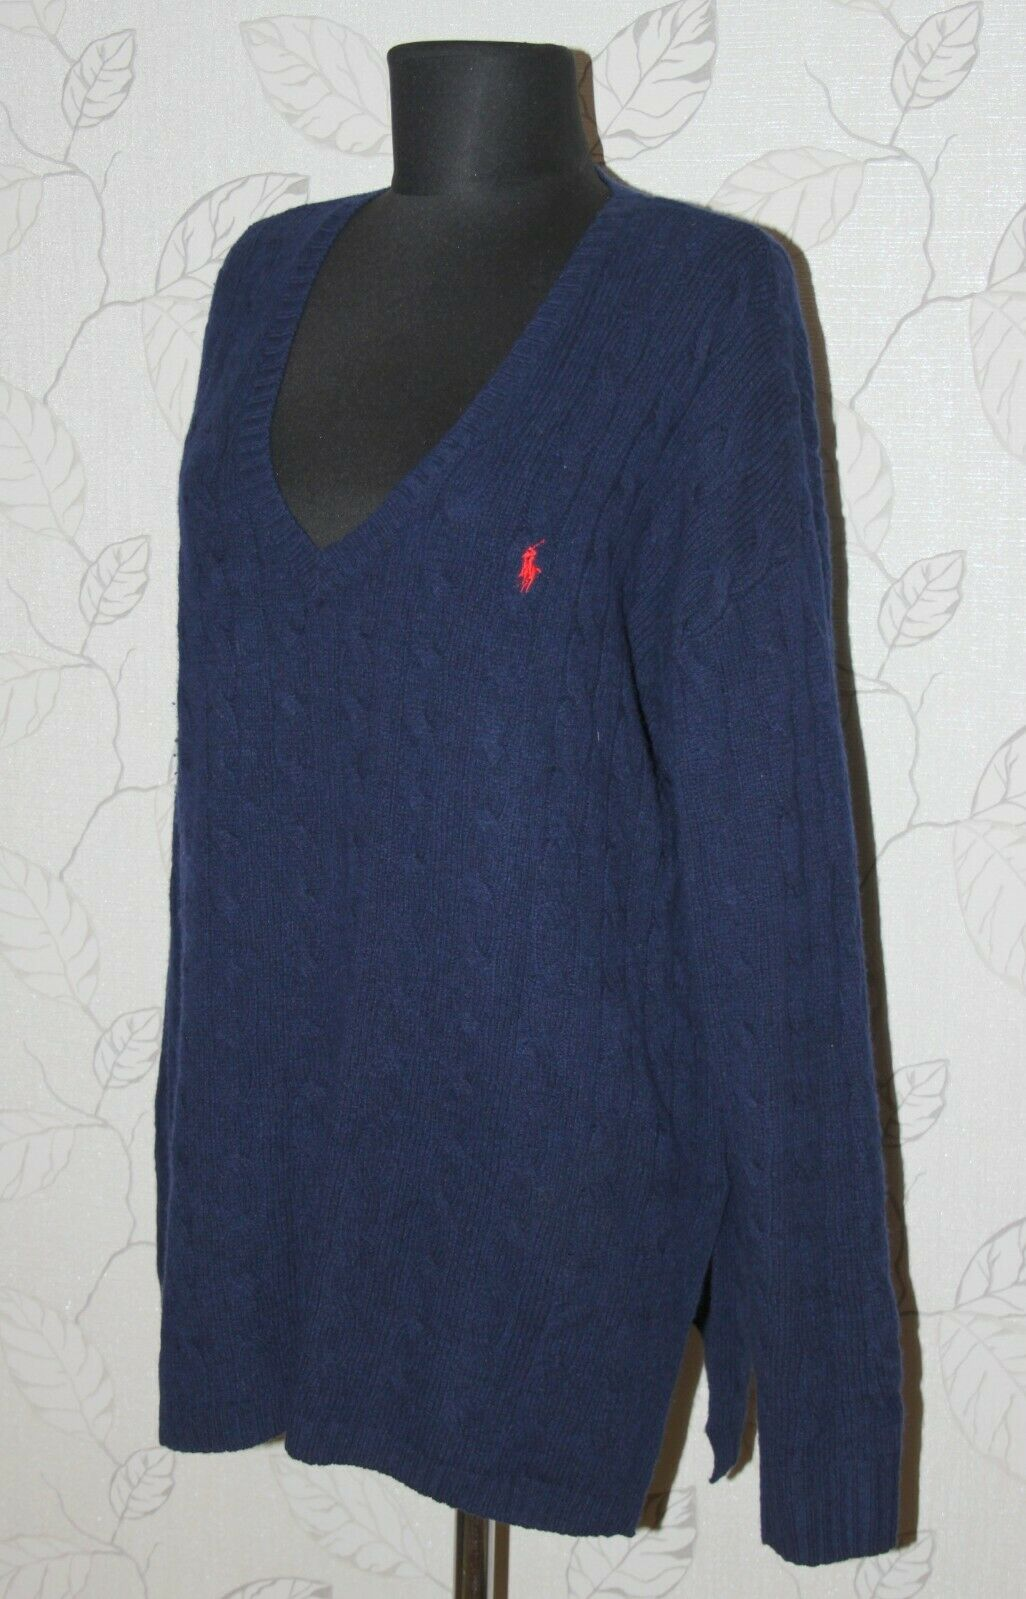 Polo Ralph Lauren womens cable knit navy jumper sweater Size L wool cashmere